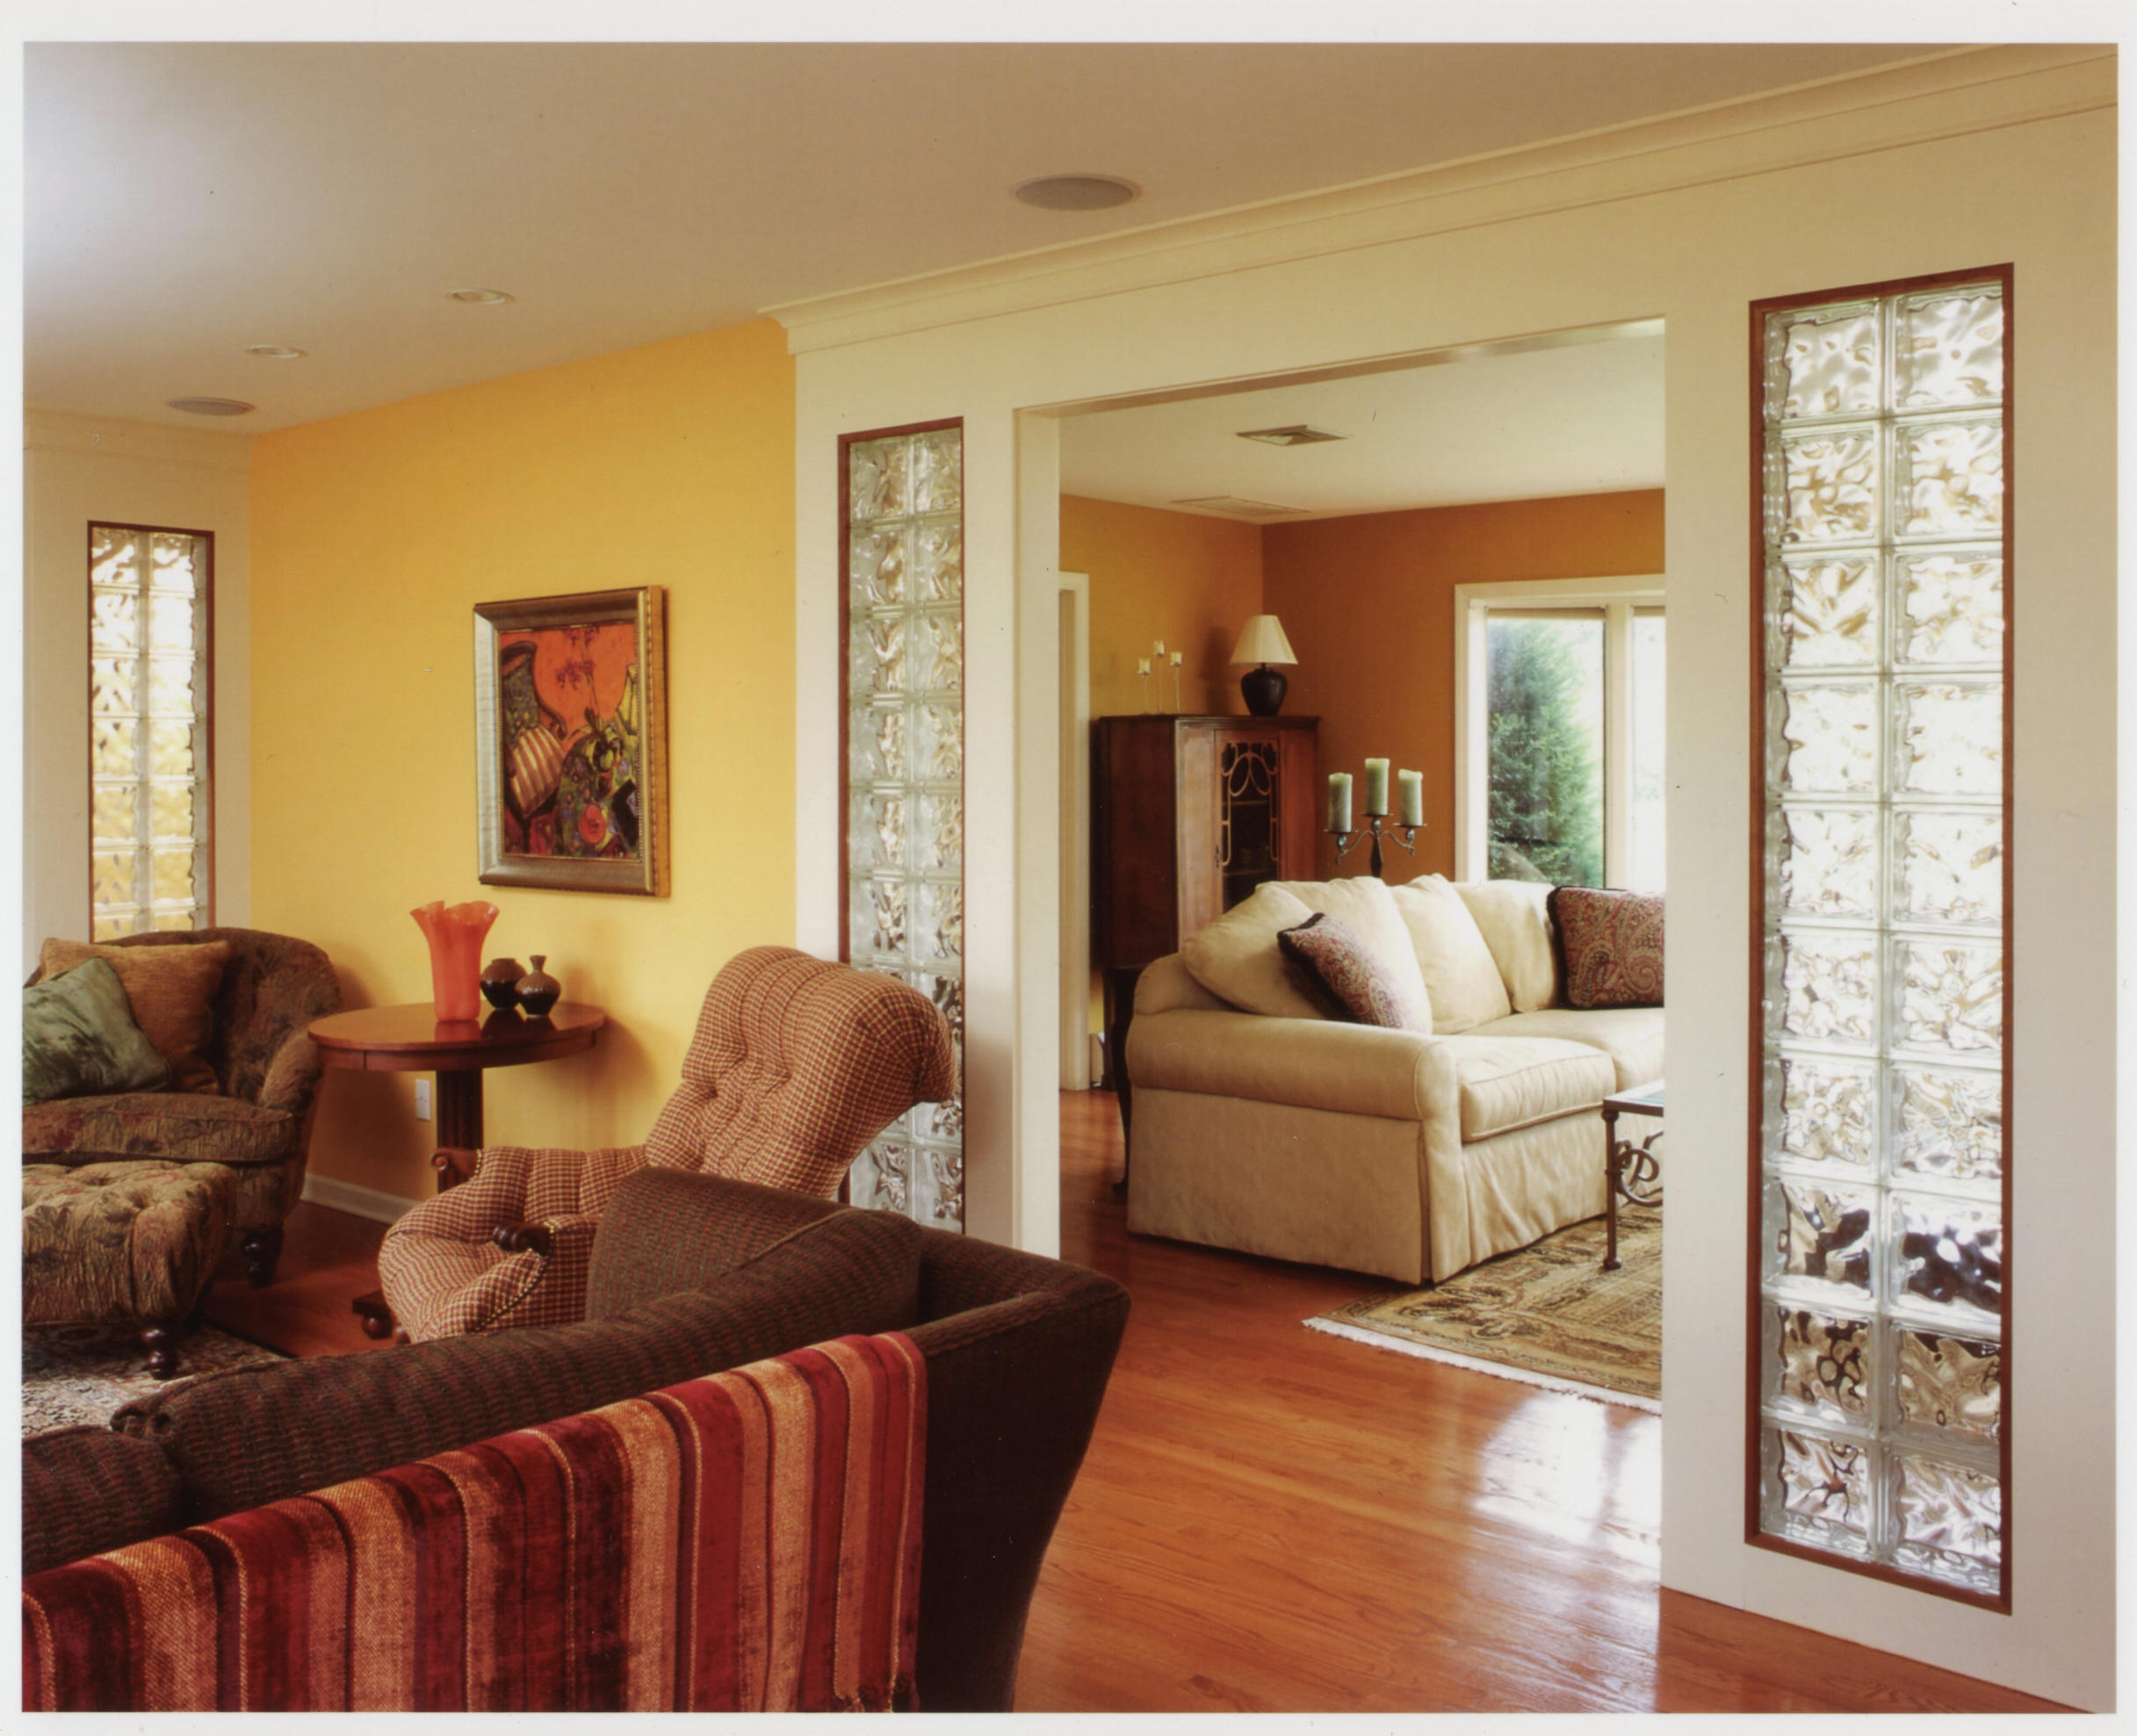 This living room combined a traditional aesthetic preference with a contemporary design and layout.